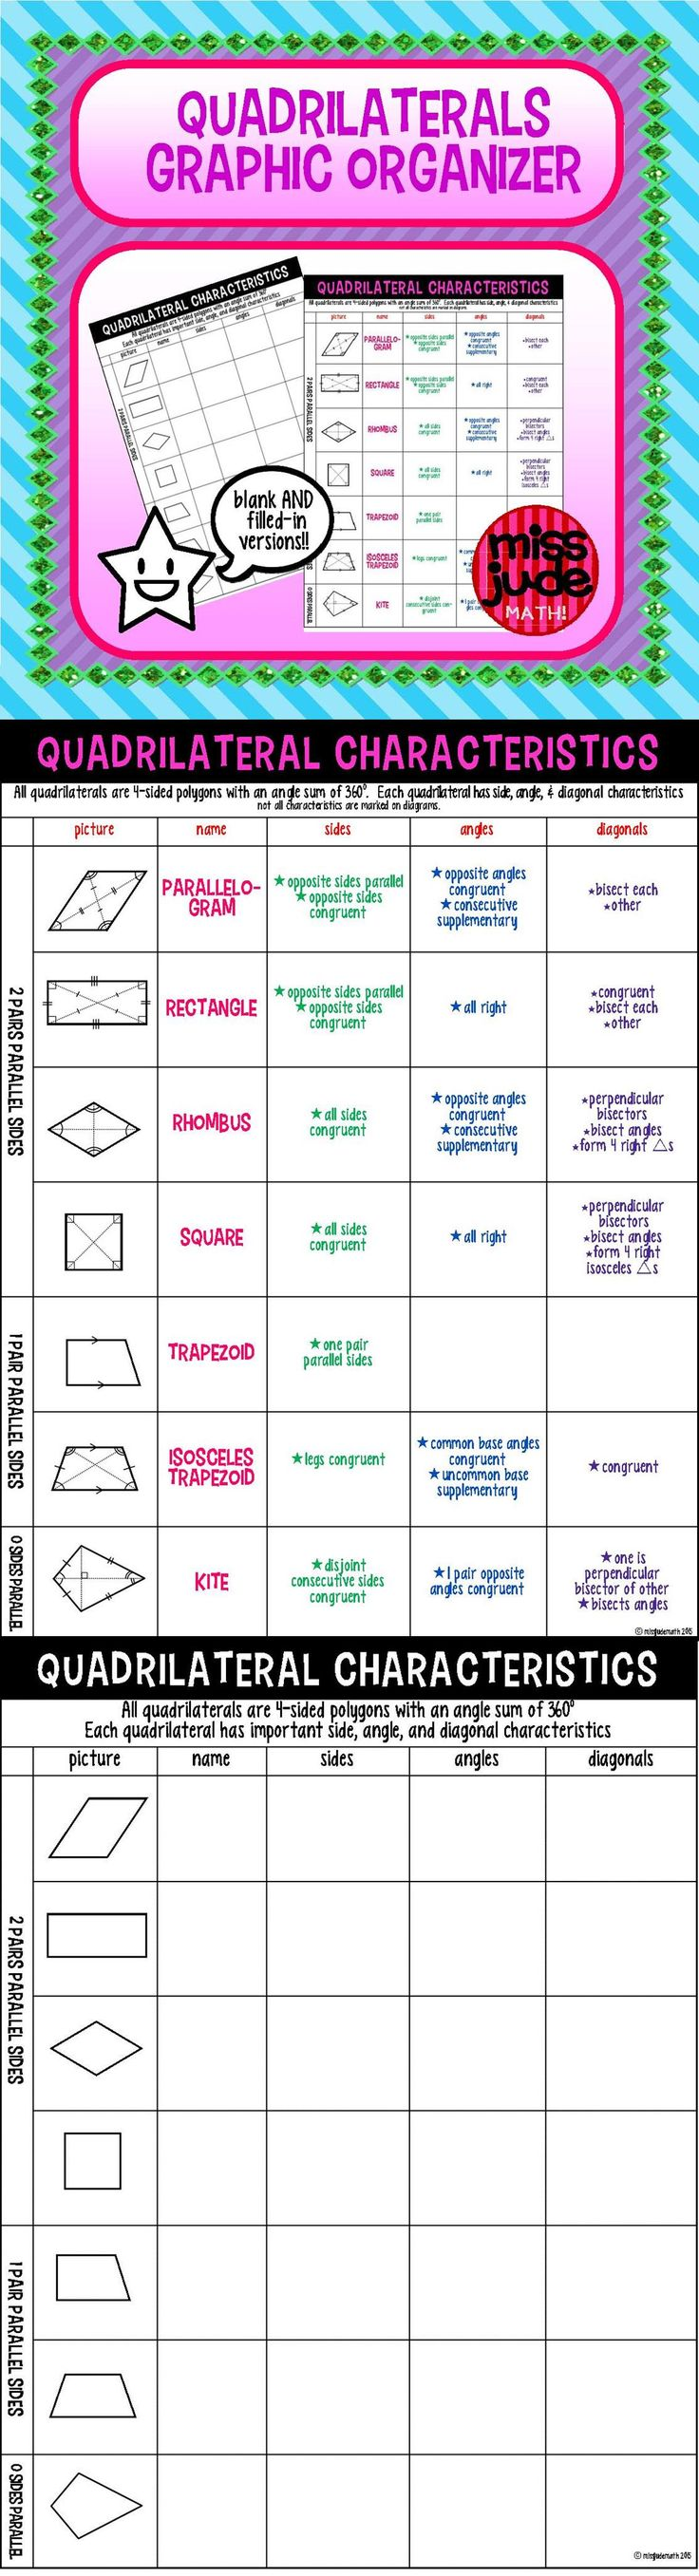 This miss jude math! graphic organizer is perfect for your Interactive Notebook or to use as a handy reference for quadrilaterals.   Included is a blank organizer which can be used to take notes and a filled-in version for reference.  From the miss jude math! TPT store